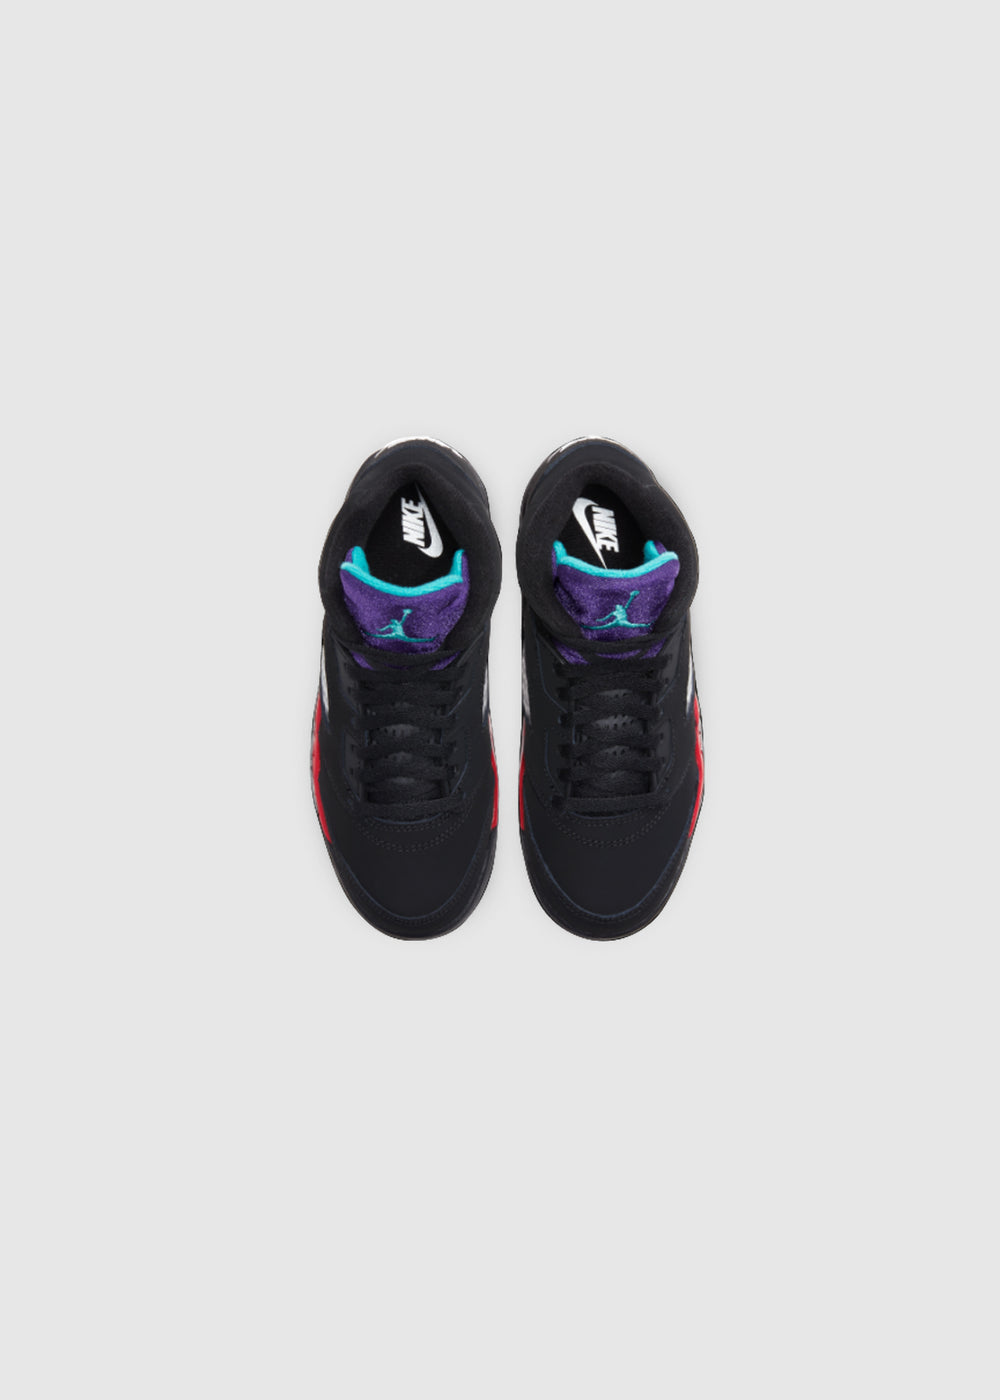 jordan-air-jordan-5-top-3-black-1-3